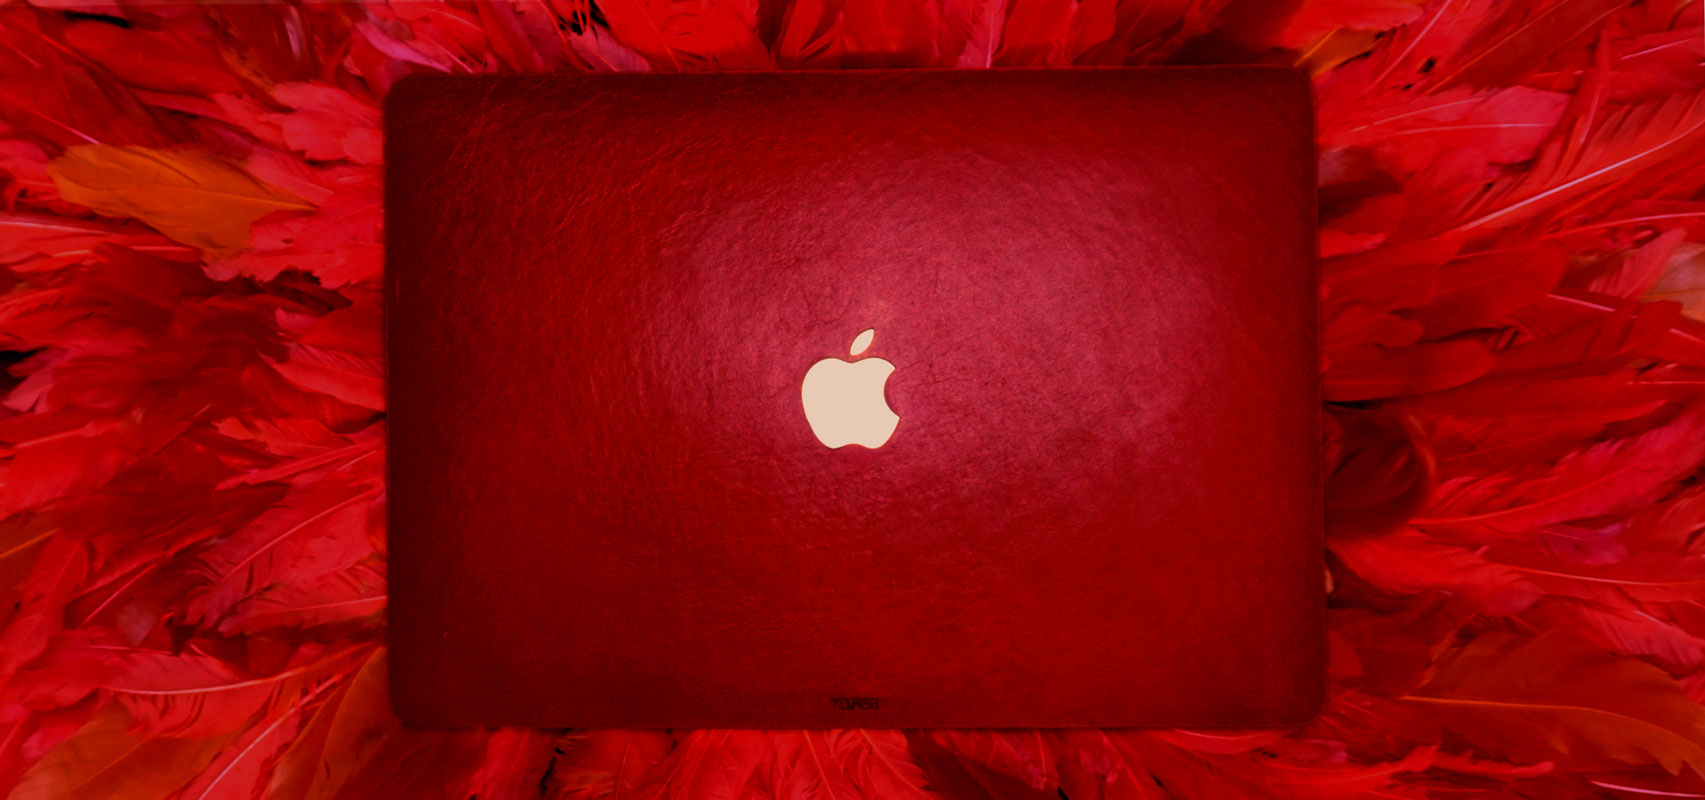 red-leather-macbook-air-2018-on-red-feathers-banner-for-web.jpg